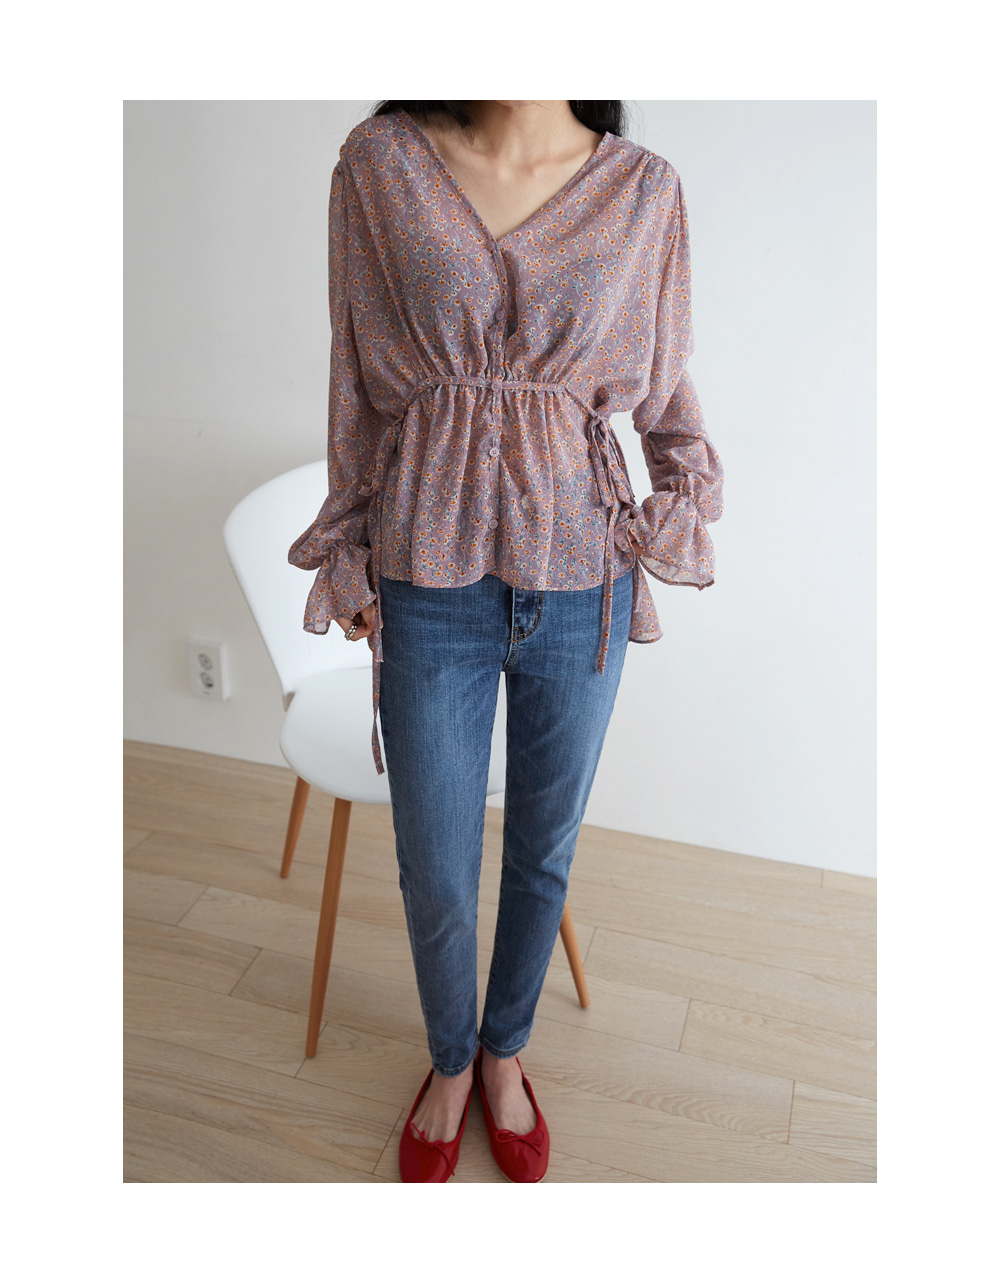 purity string blouse